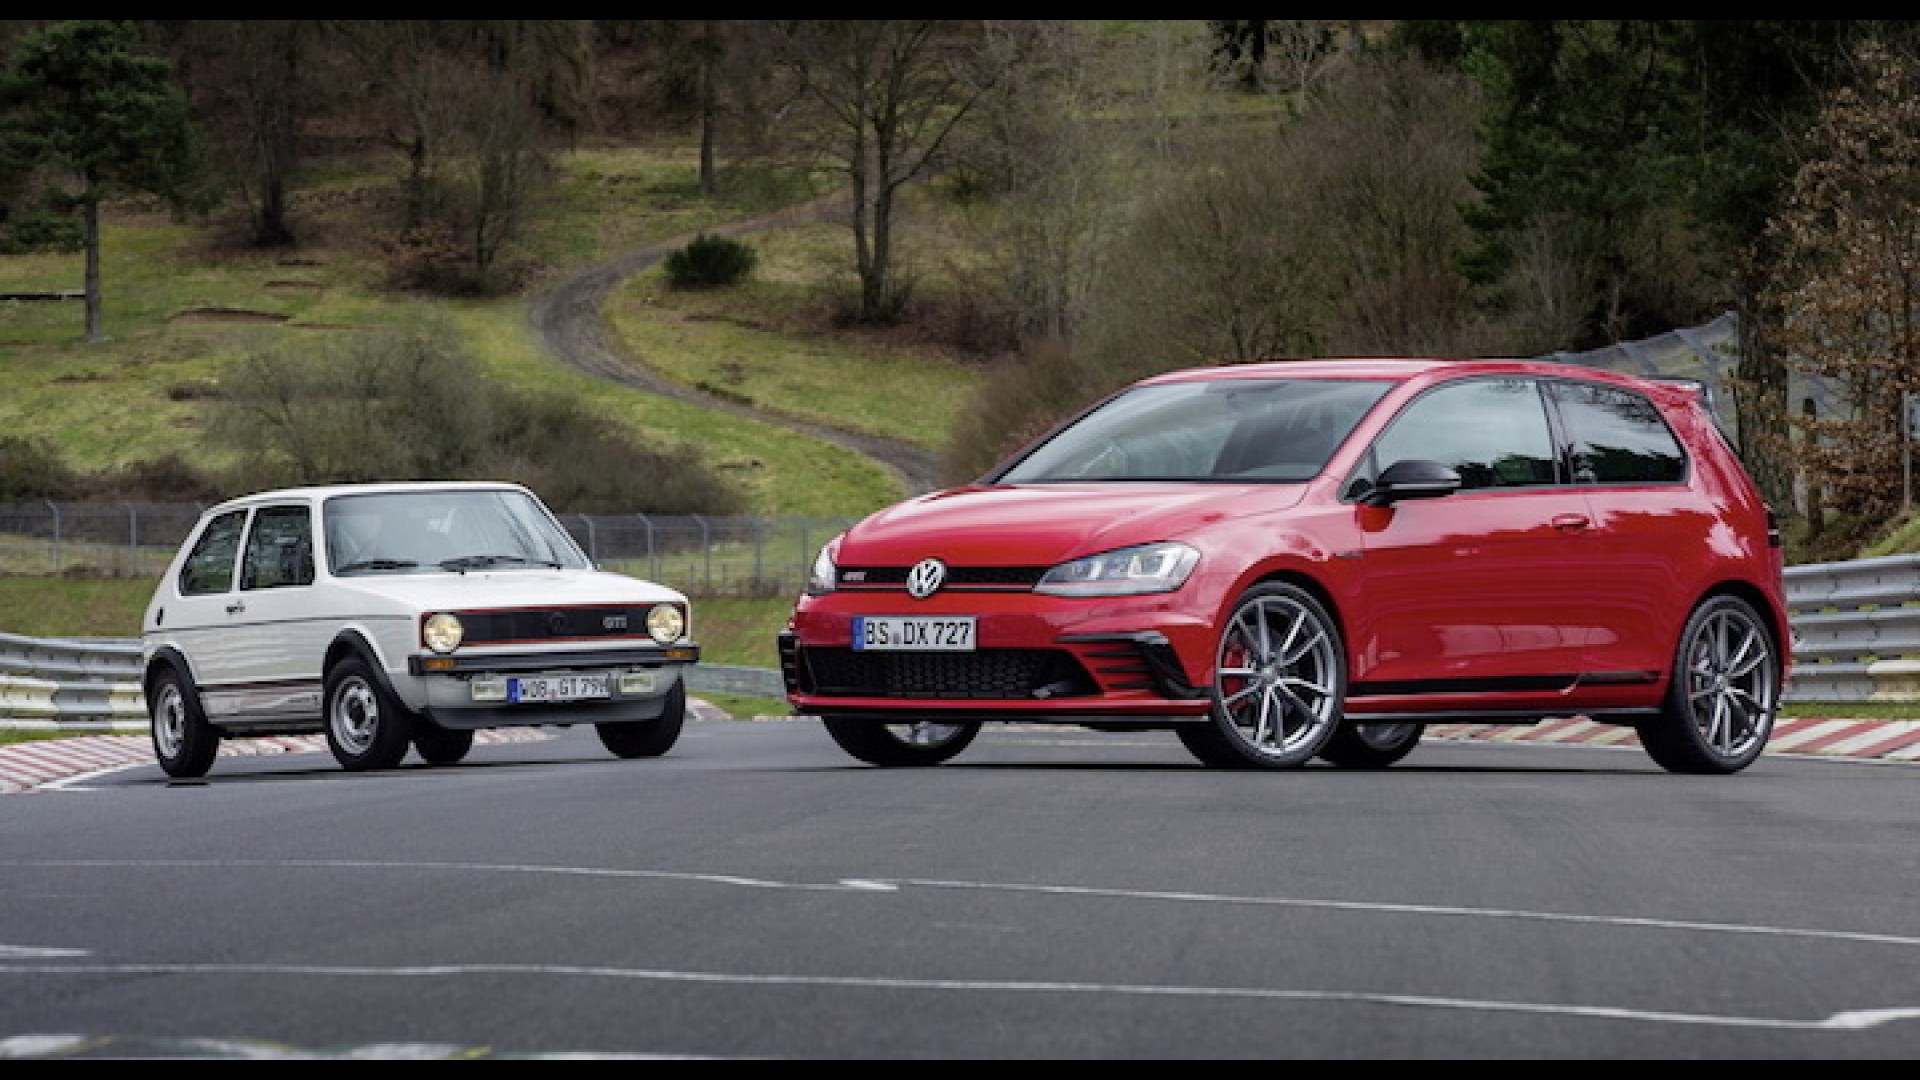 VW Golf production halted amid supplier dispute